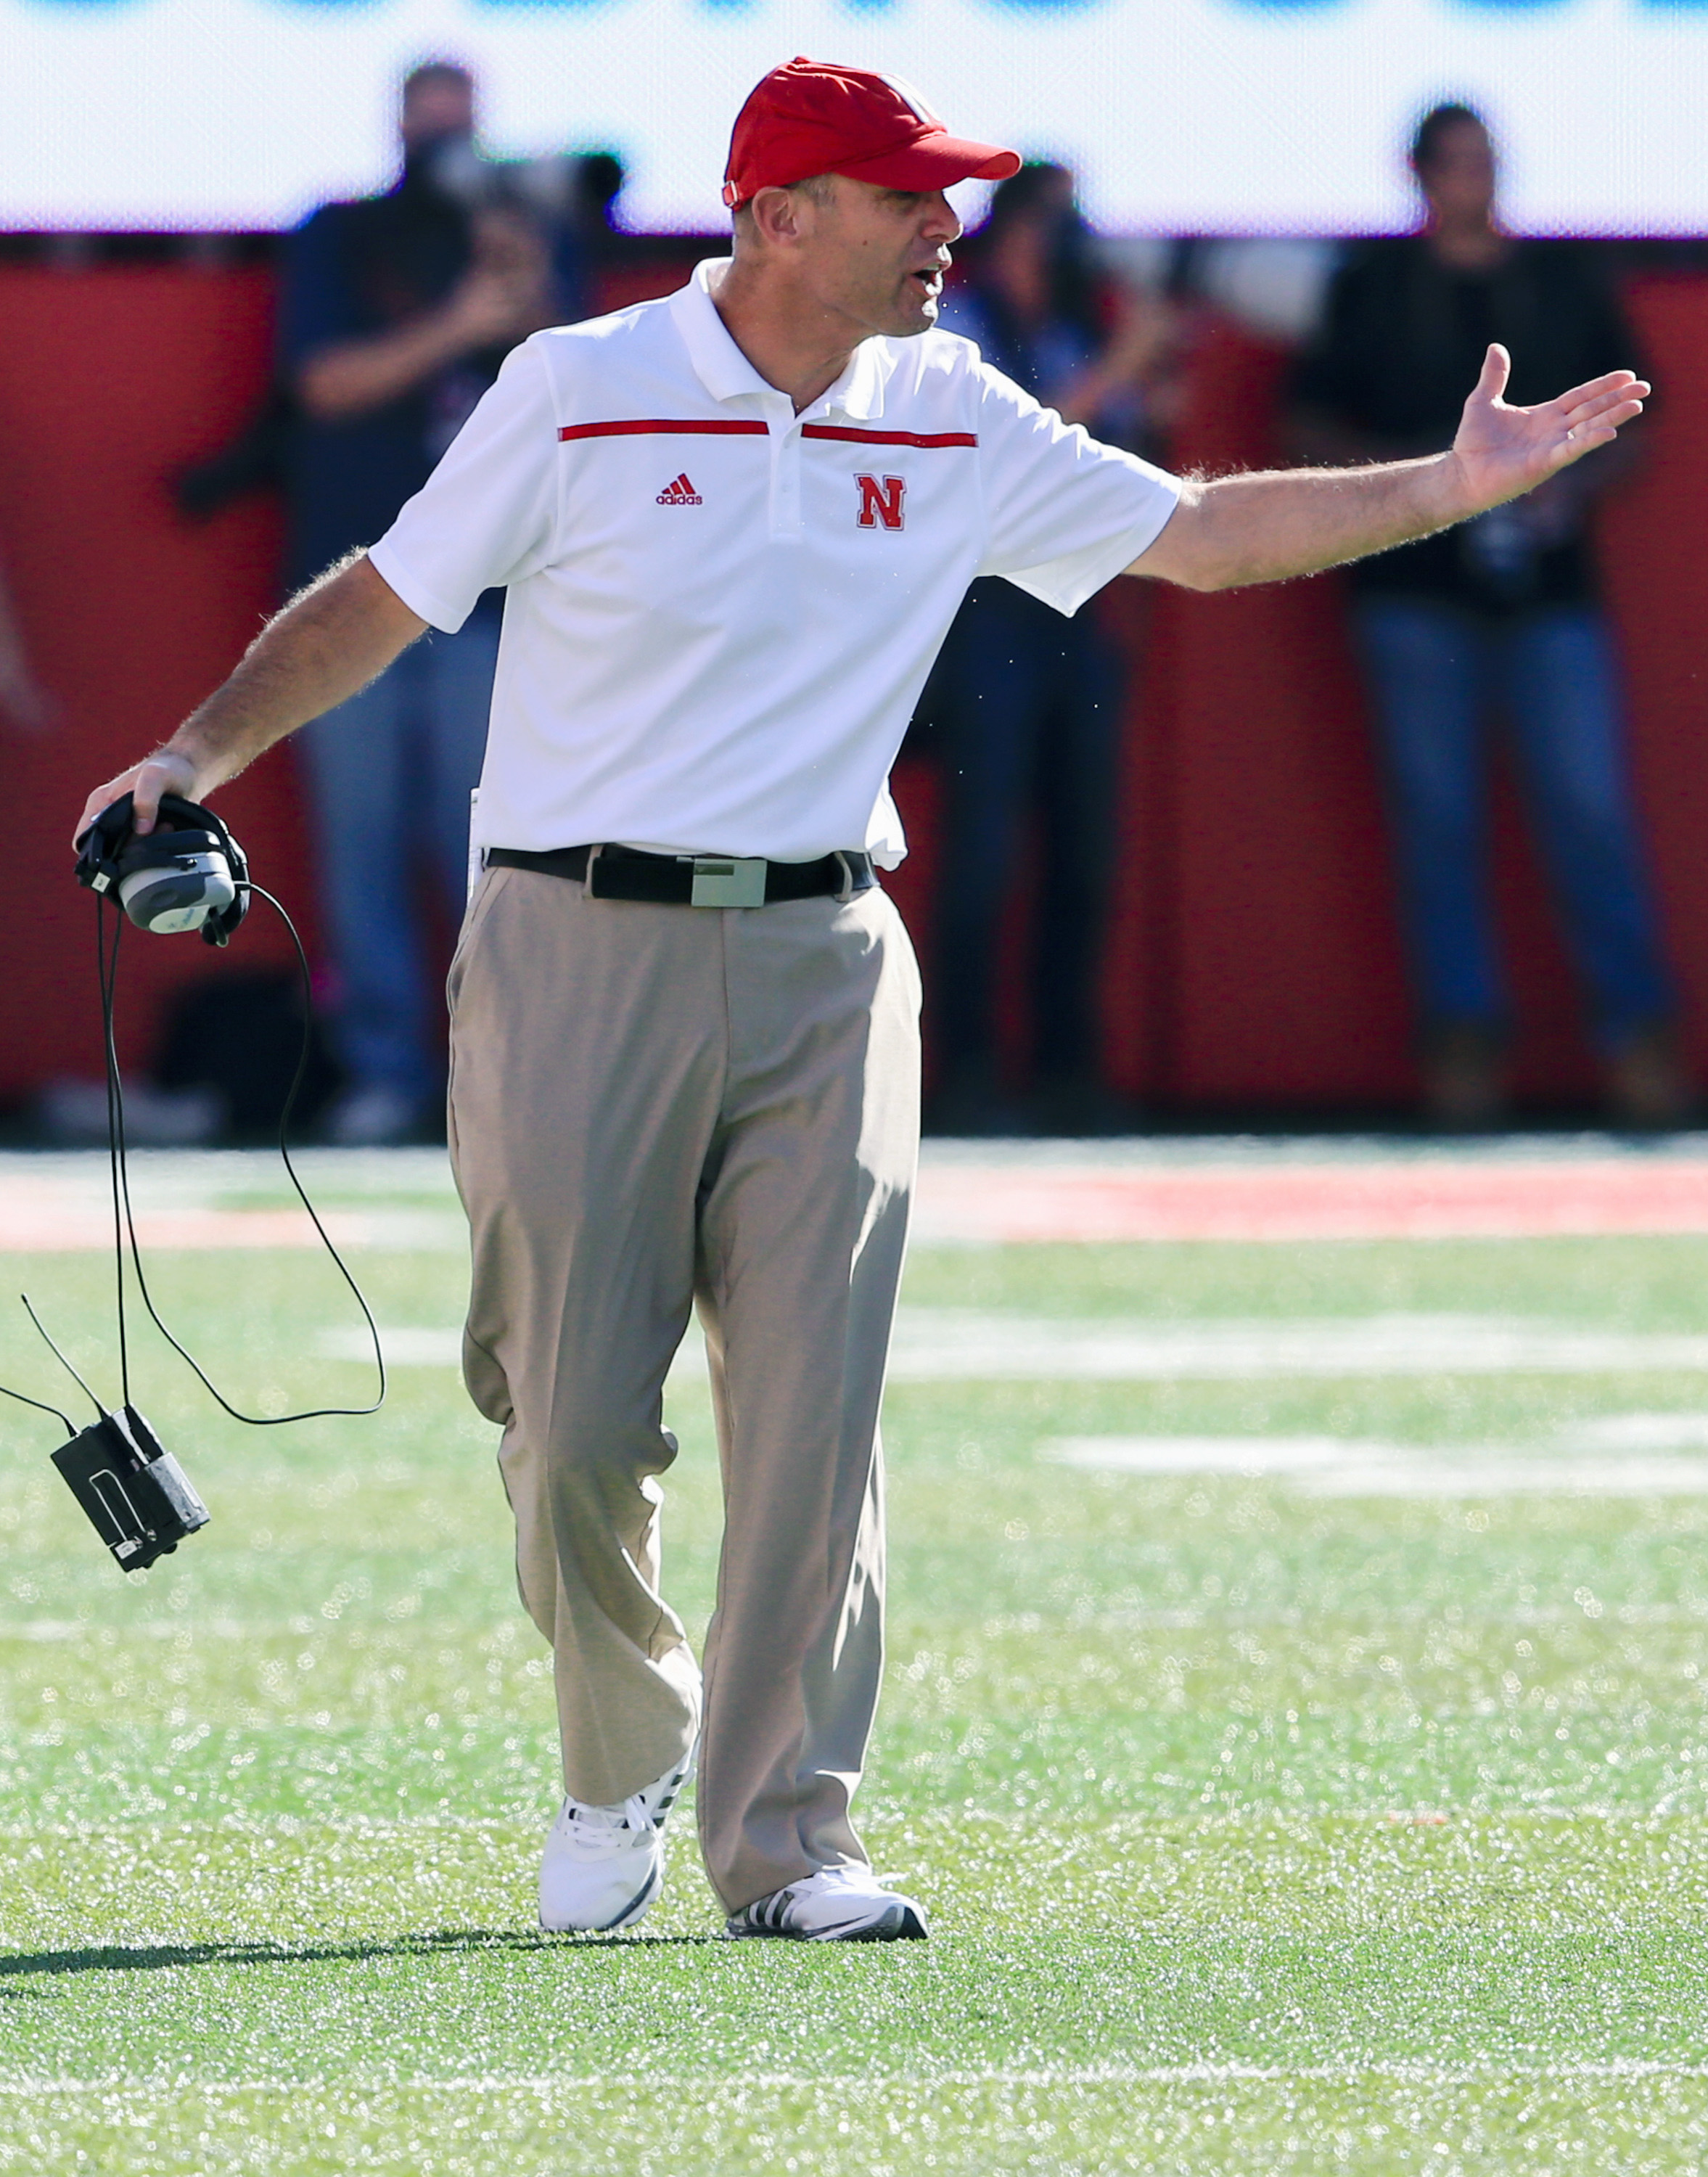 Nebraska head coach Mike Riley disputes a penalty against his team during the first half of an NCAA college football game against Wisconsin in Lincoln, Neb., Saturday, Oct. 10, 2015. (AP Photo/Nati Harnik)